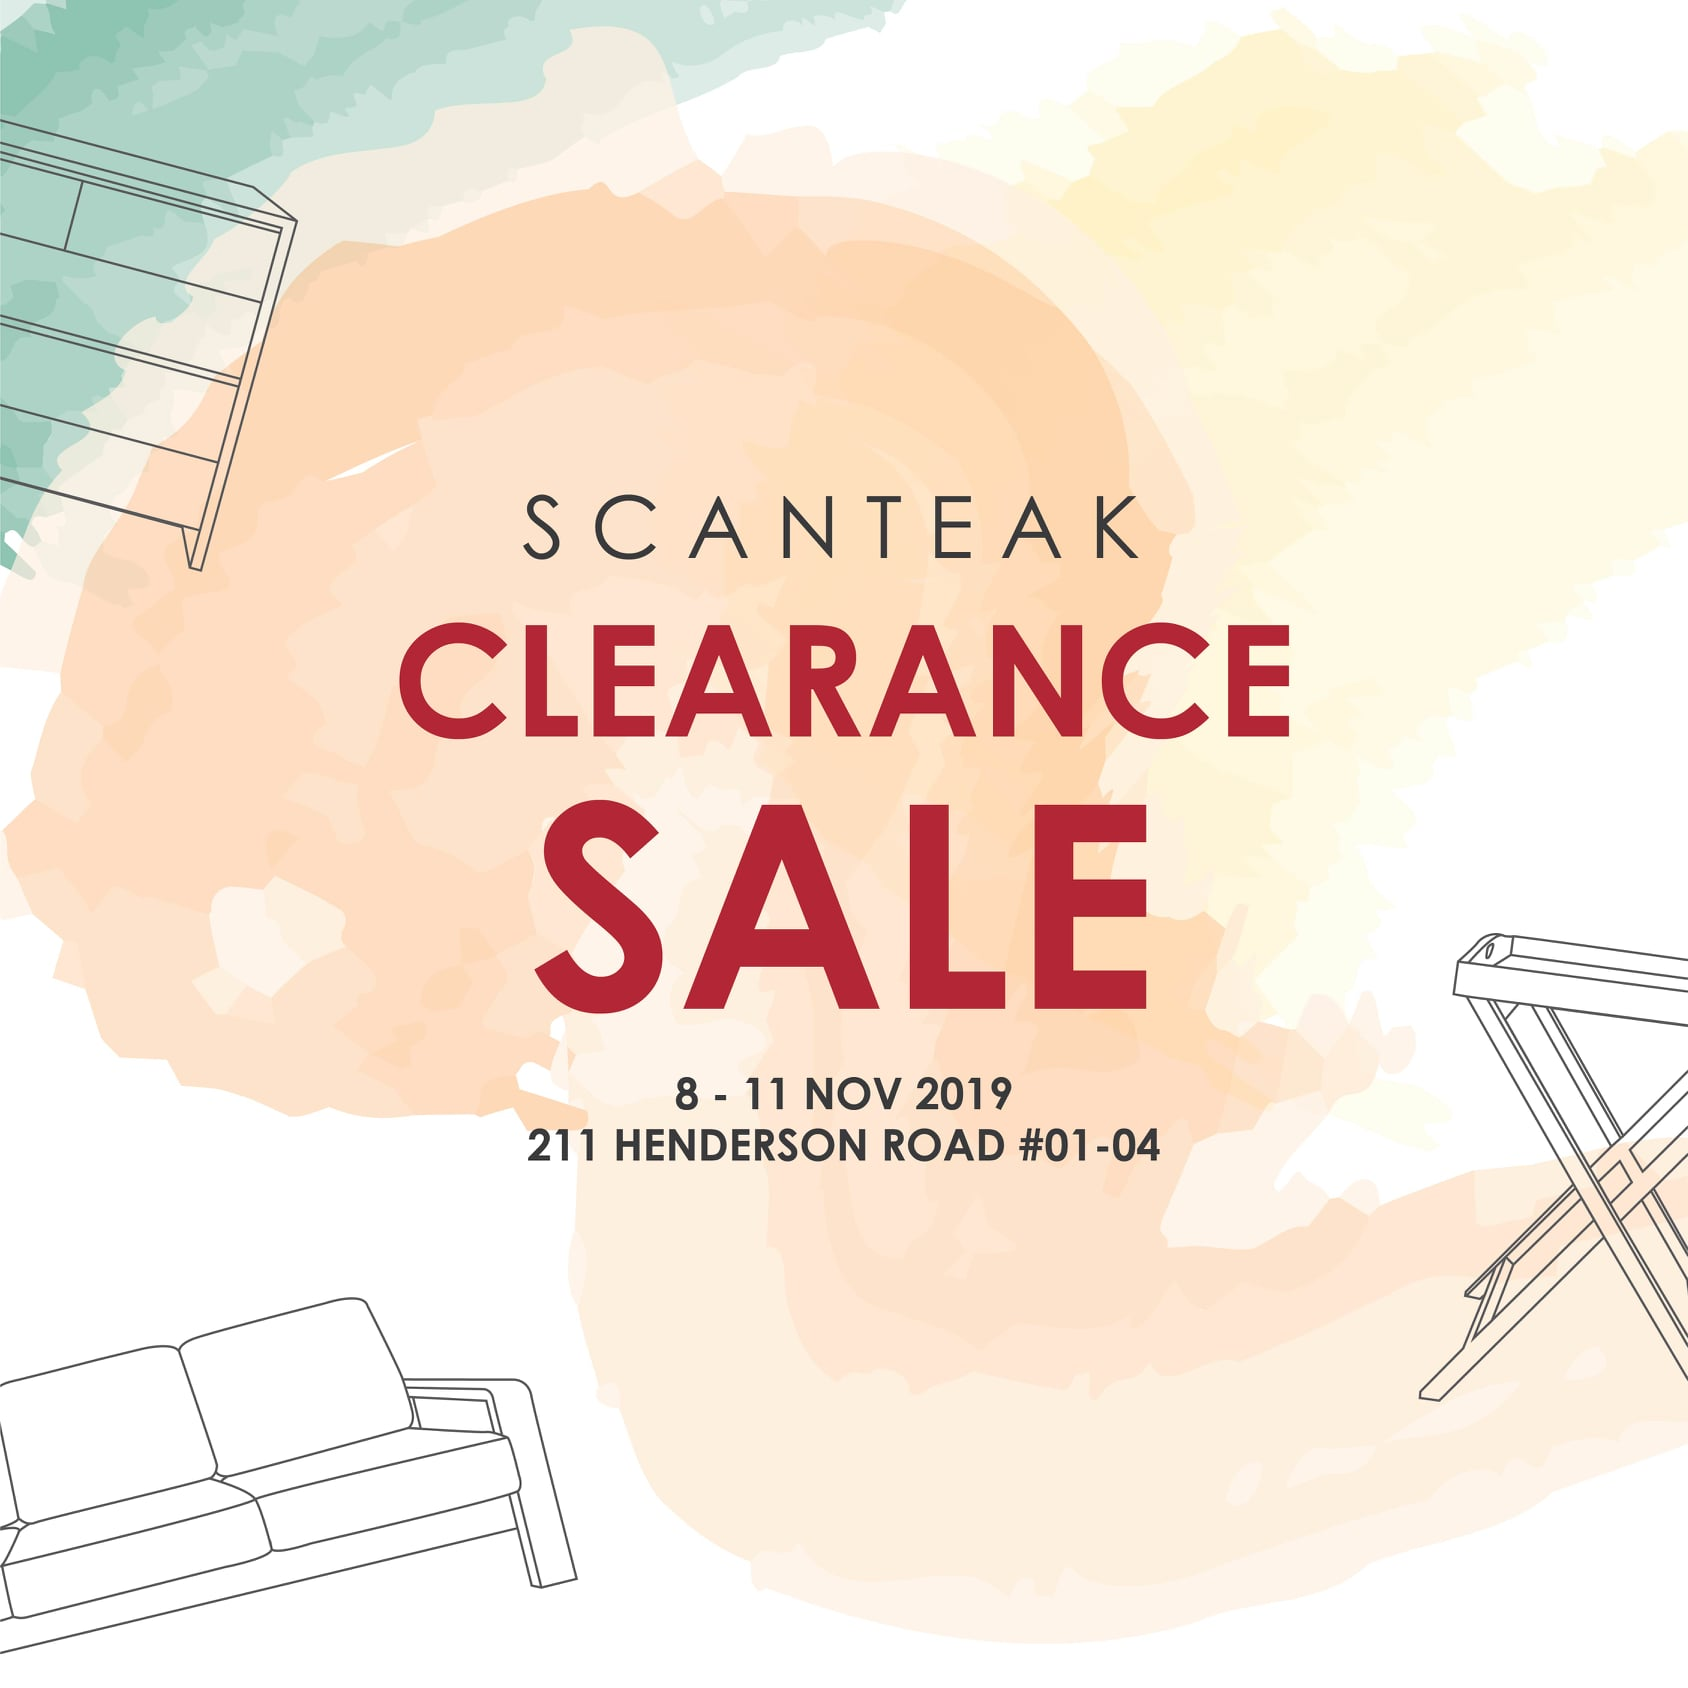 Scanteak Singapore is having a Clearance Sale Up to 60% Off Promotion 8-11 Nov 2019 | Why Not Deals 1 & Promotions